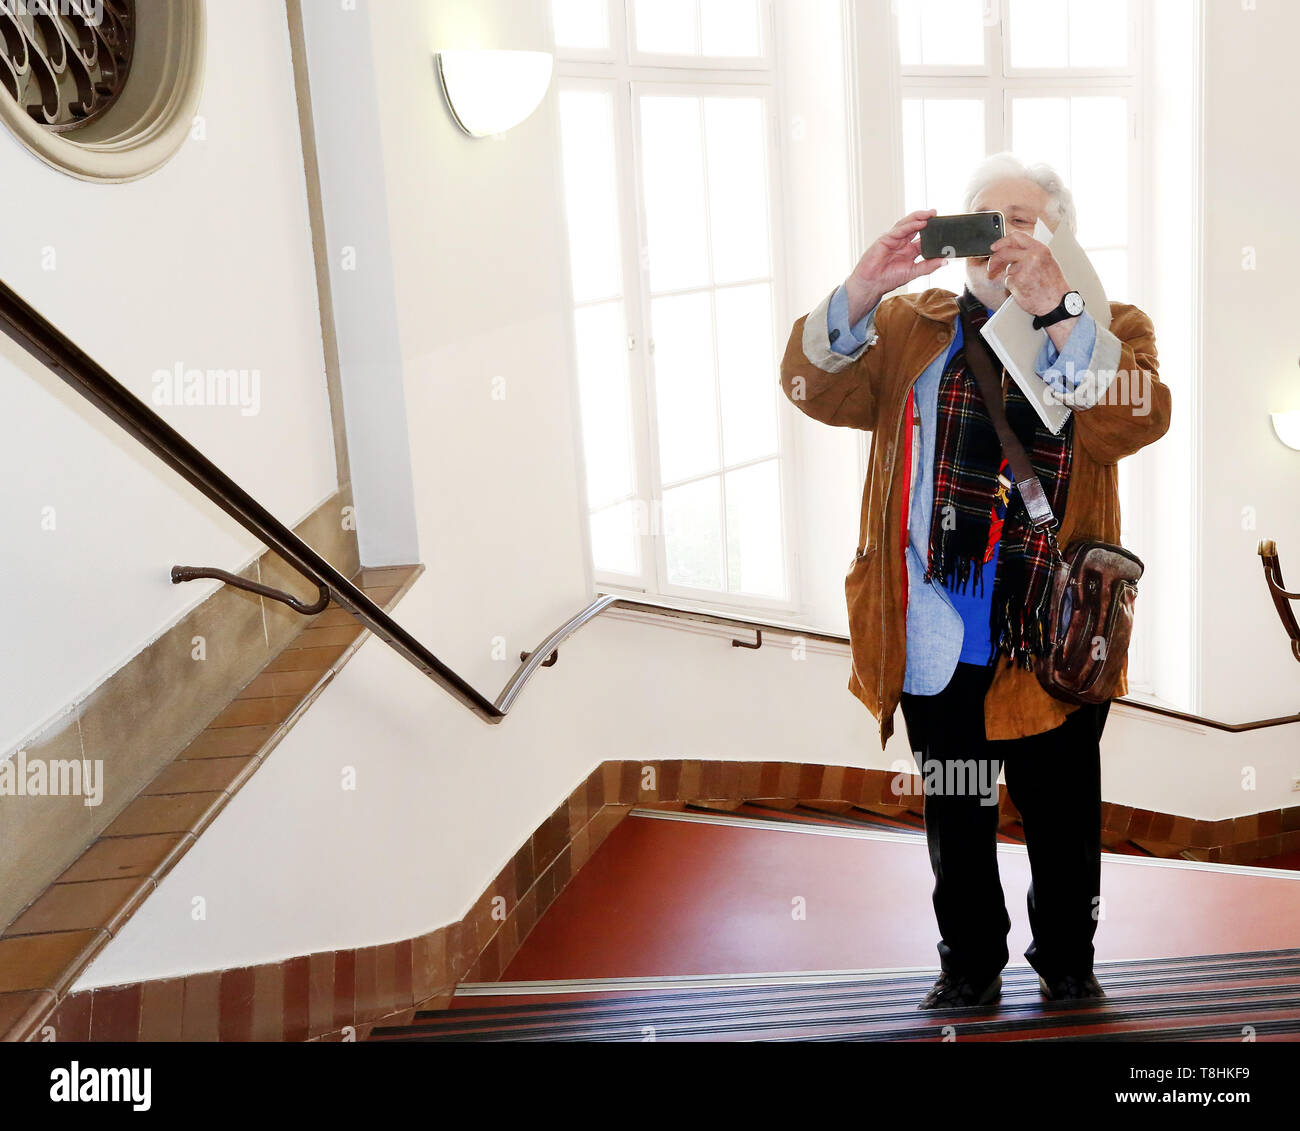 Duisburg, Germany. 13th May, 2019. The publicist Henryk M. Broder, accused of insulting the accused, films the people present with his smartphone before the trial begins. In September 2016, at the request of the weekly newspaper 'Junge Freiheit', Broder had said about the Islamic scholar Lamya Kaddor that she had 'a gossip on her hands'. Broder appealed against an order of punishment, which is why the trial is now at trial. Credit: Roland Weihrauch/dpa/Alamy Live News - Stock Image